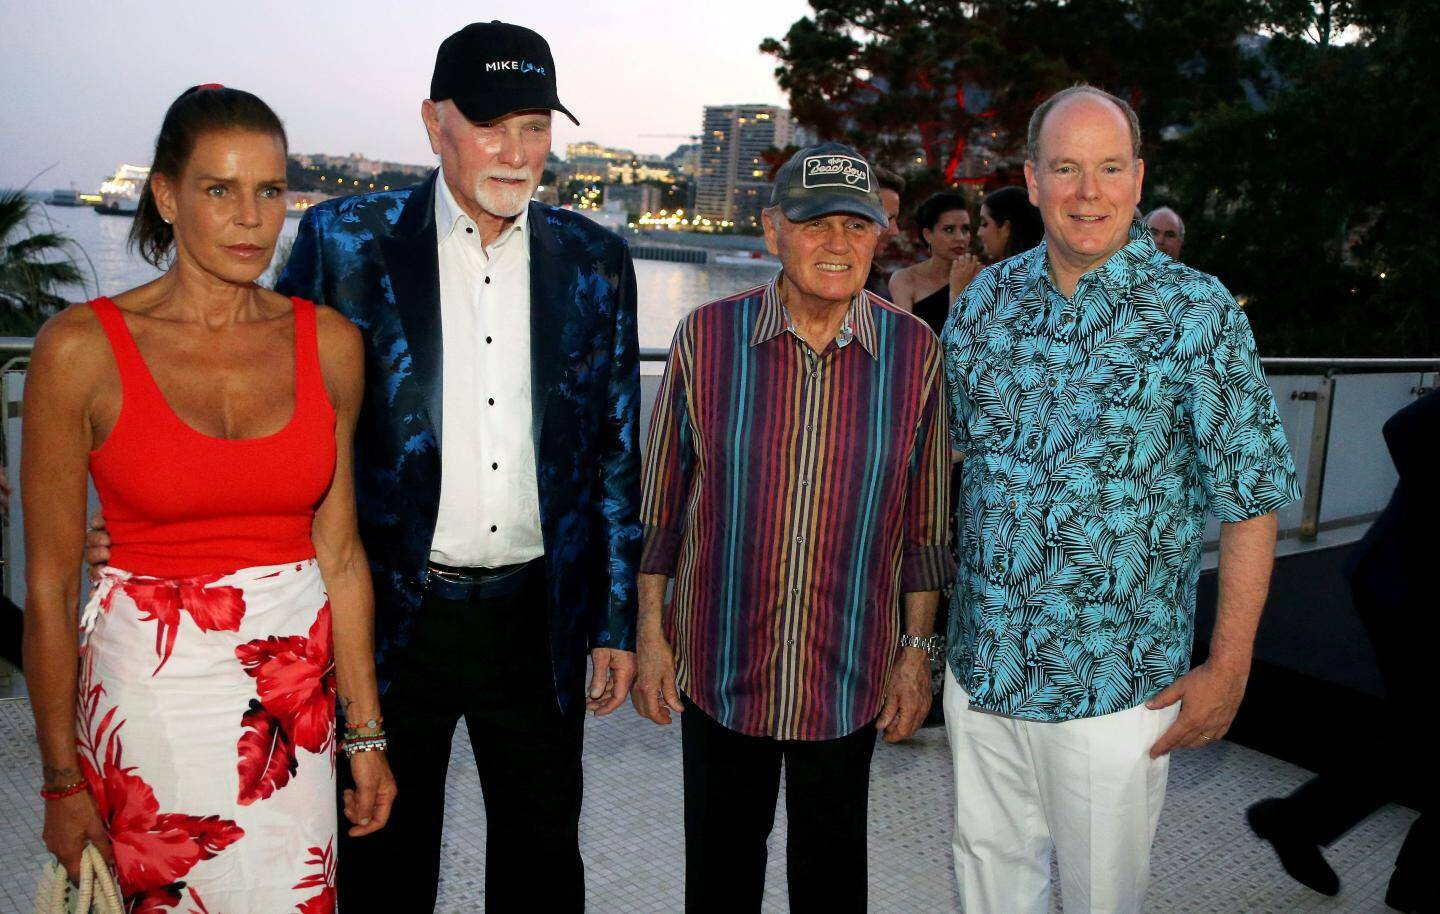 Ambiance « Good Vibrations » le 12 juillet pour le concert des Beach Boys au profit de Fight Aids Monaco.